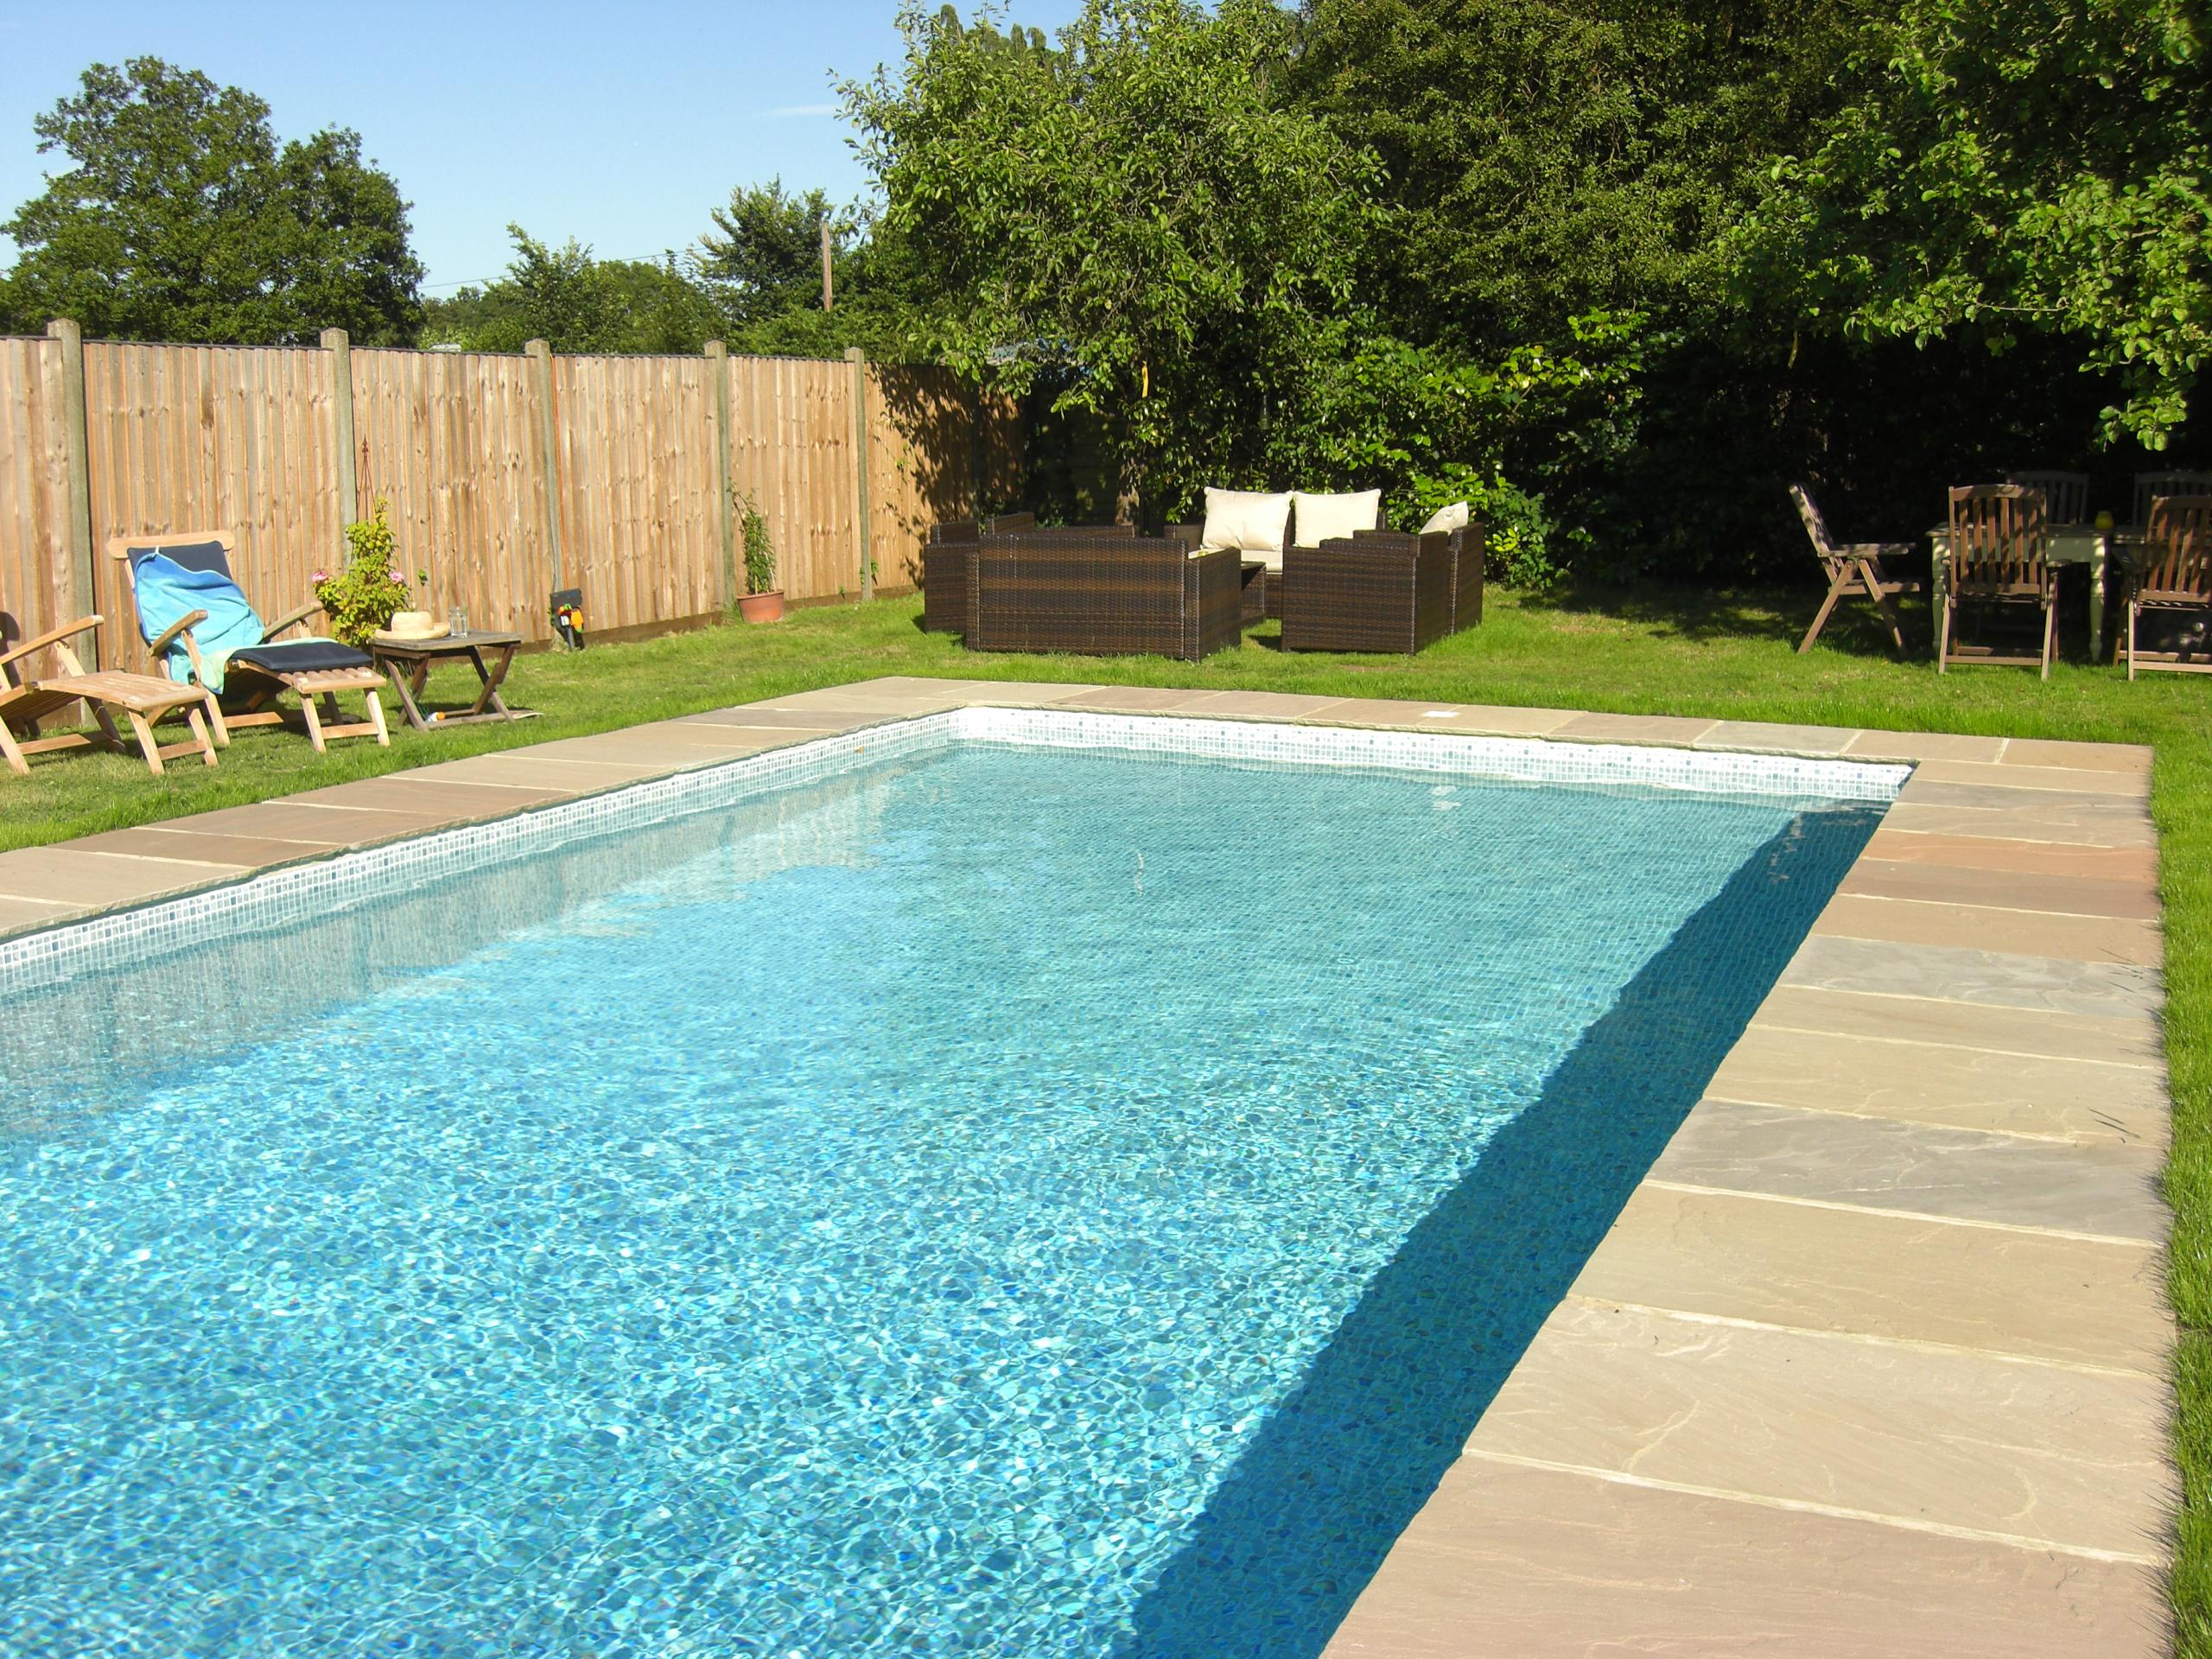 Pool liner installation ascot pools swimming pool for Pool liner installation